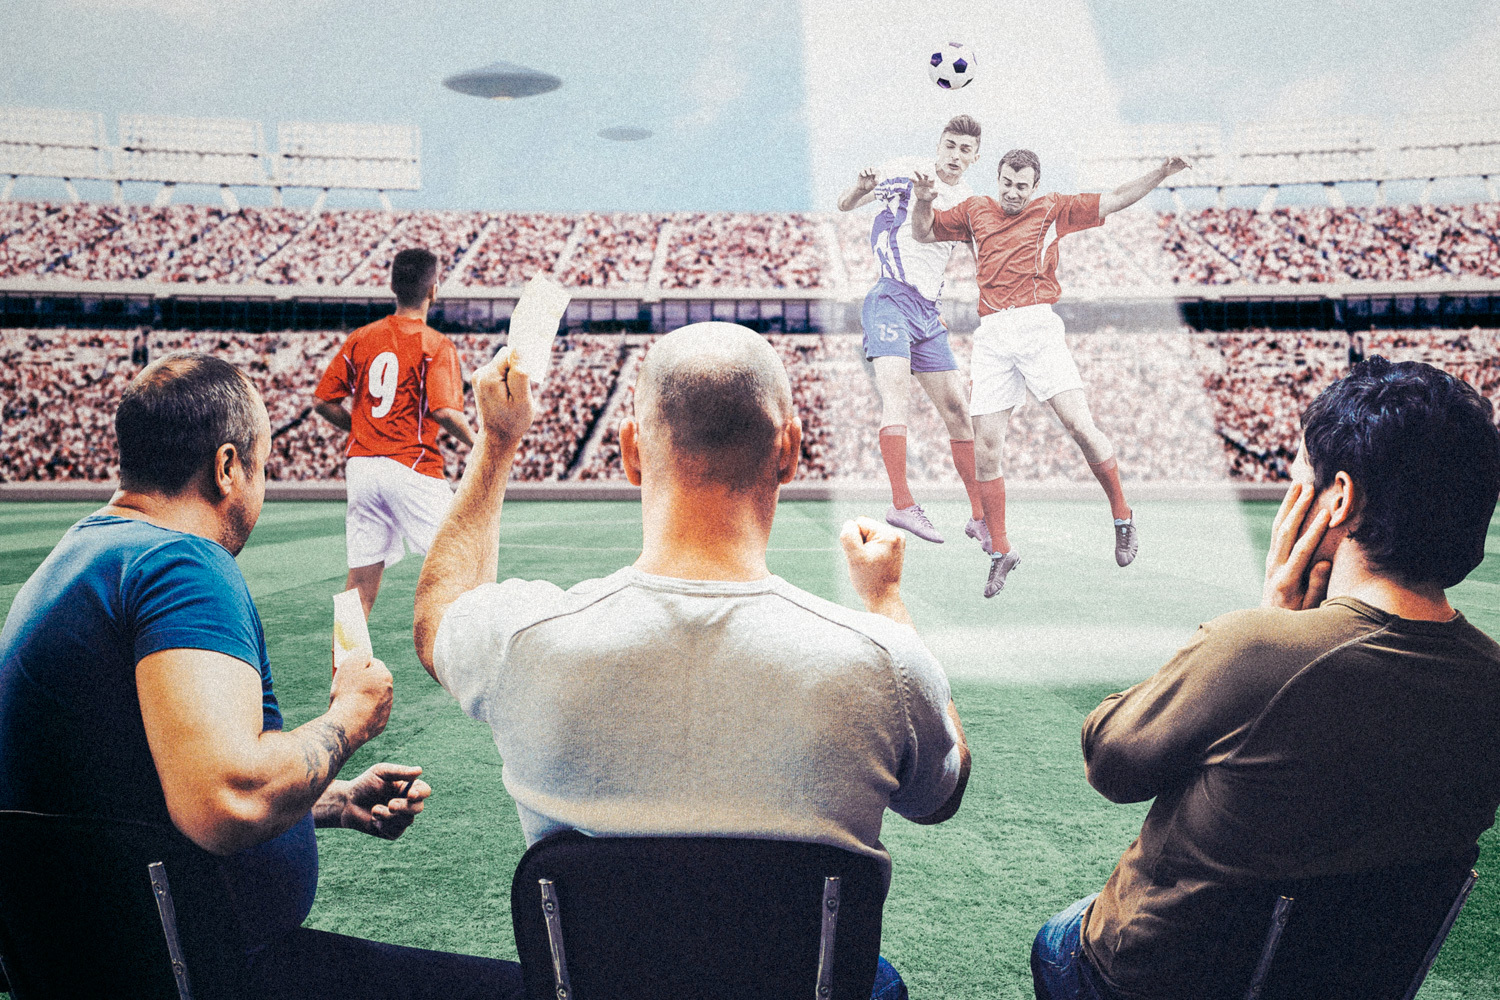 How COVID-19 Reshaped the Future of Legal Sports Betting in America